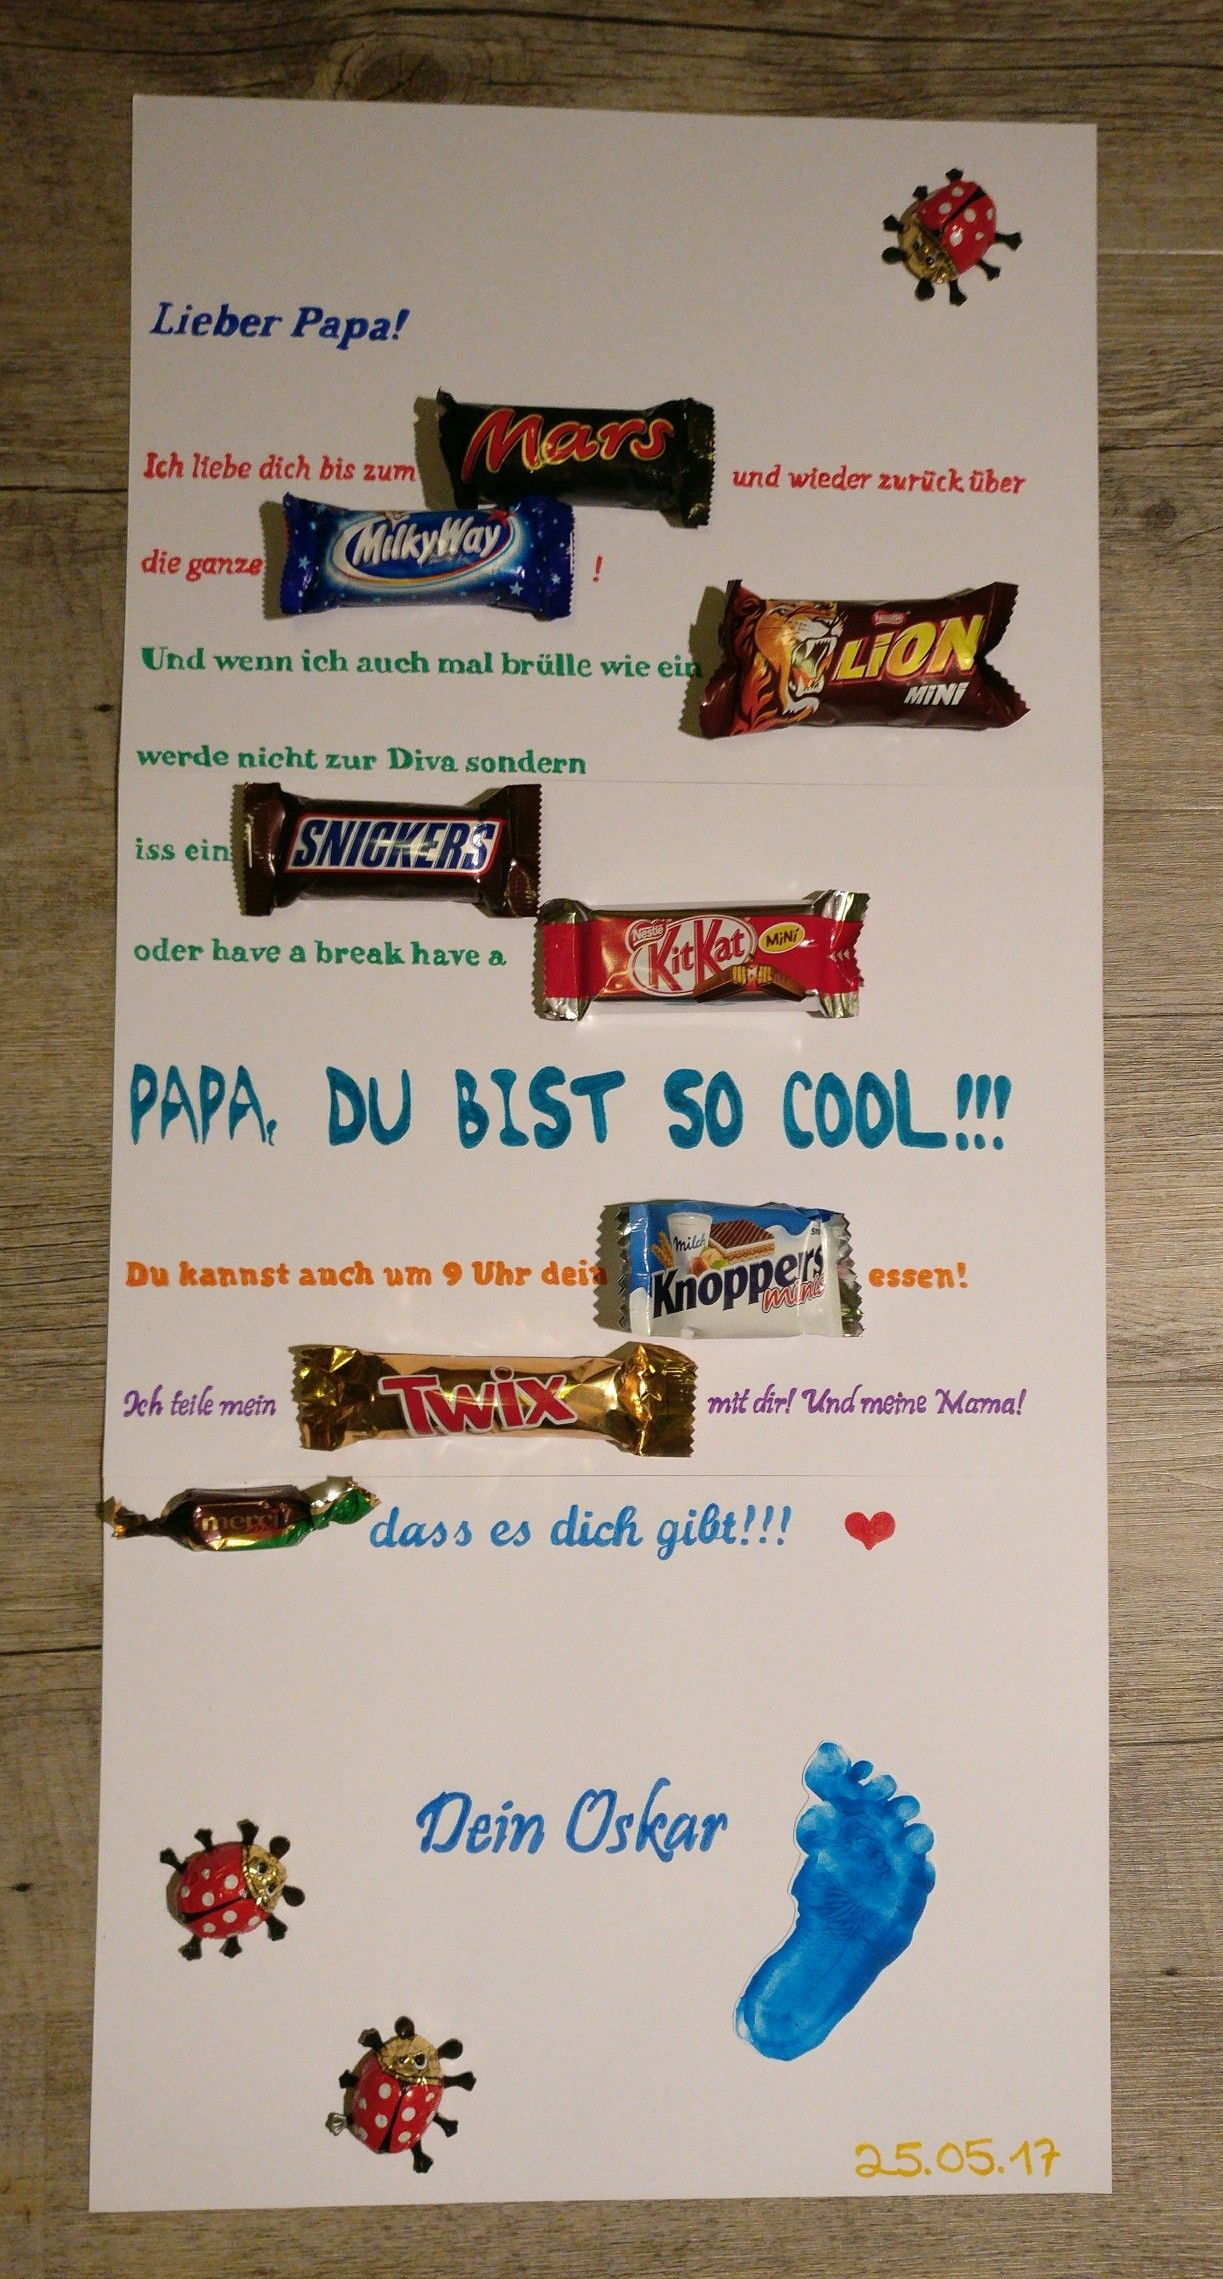 Vatertag Mars Milky Way Lion Snickers Kit Kat Knoppers Twix Merci